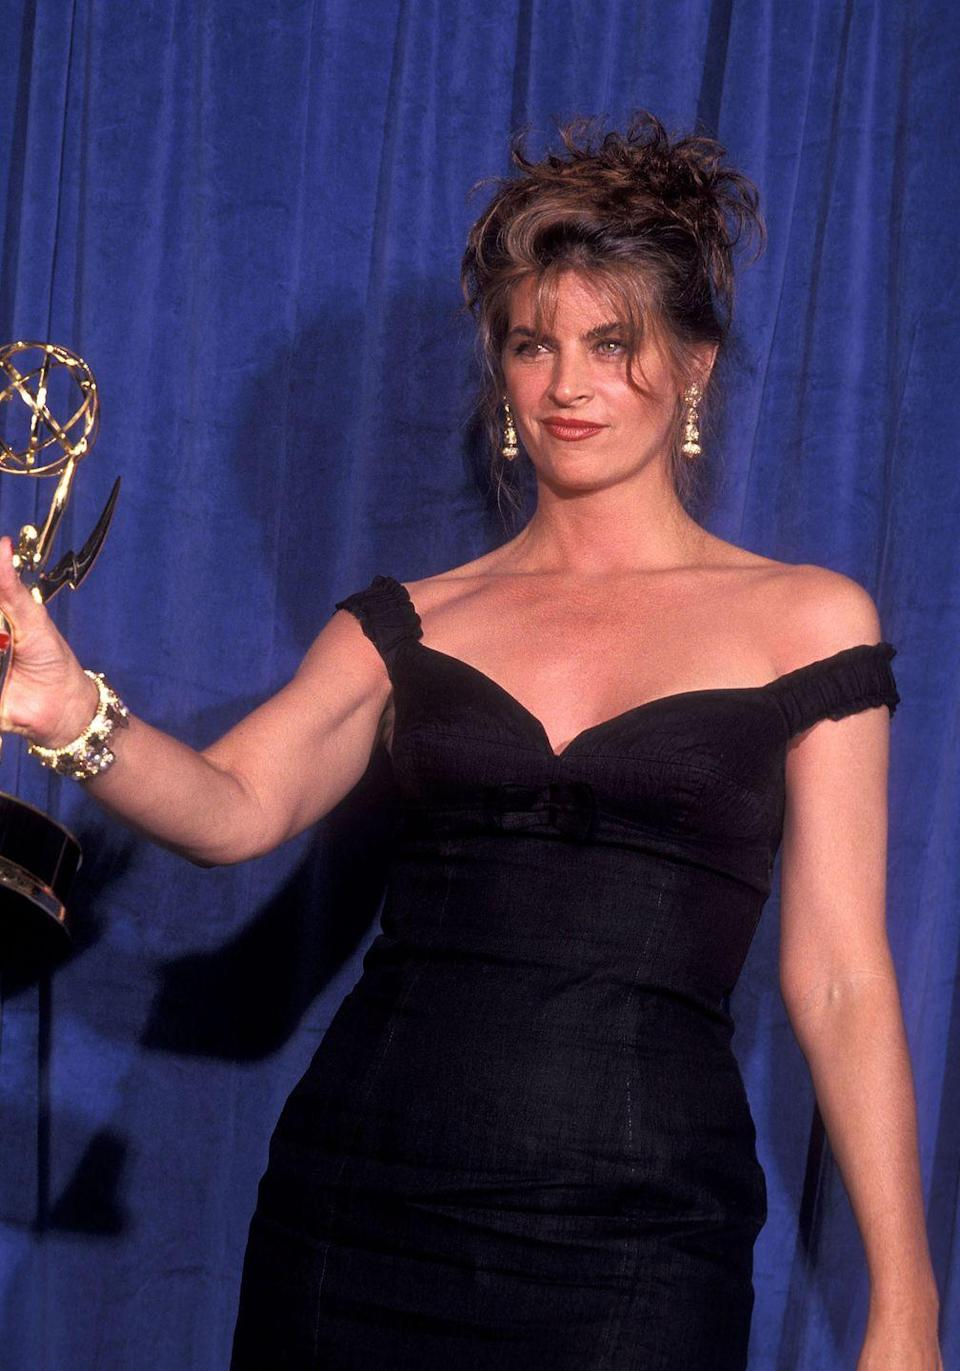 """<p>While jokes about sex might be par for the course nowadays, it wasn't that way back in 1991. So when Kirstie Alley made a sex joke on stage during her acceptance speech after winning Best Lead Actress in a Comedy Series, it was a big deal. She thanked her then-husband Parker Stevenson as """"the man who has given me the big one for the last eight years."""" It was even more awkward because Macaulay Culkin was the presenter—and he was a kid at the time. </p>"""